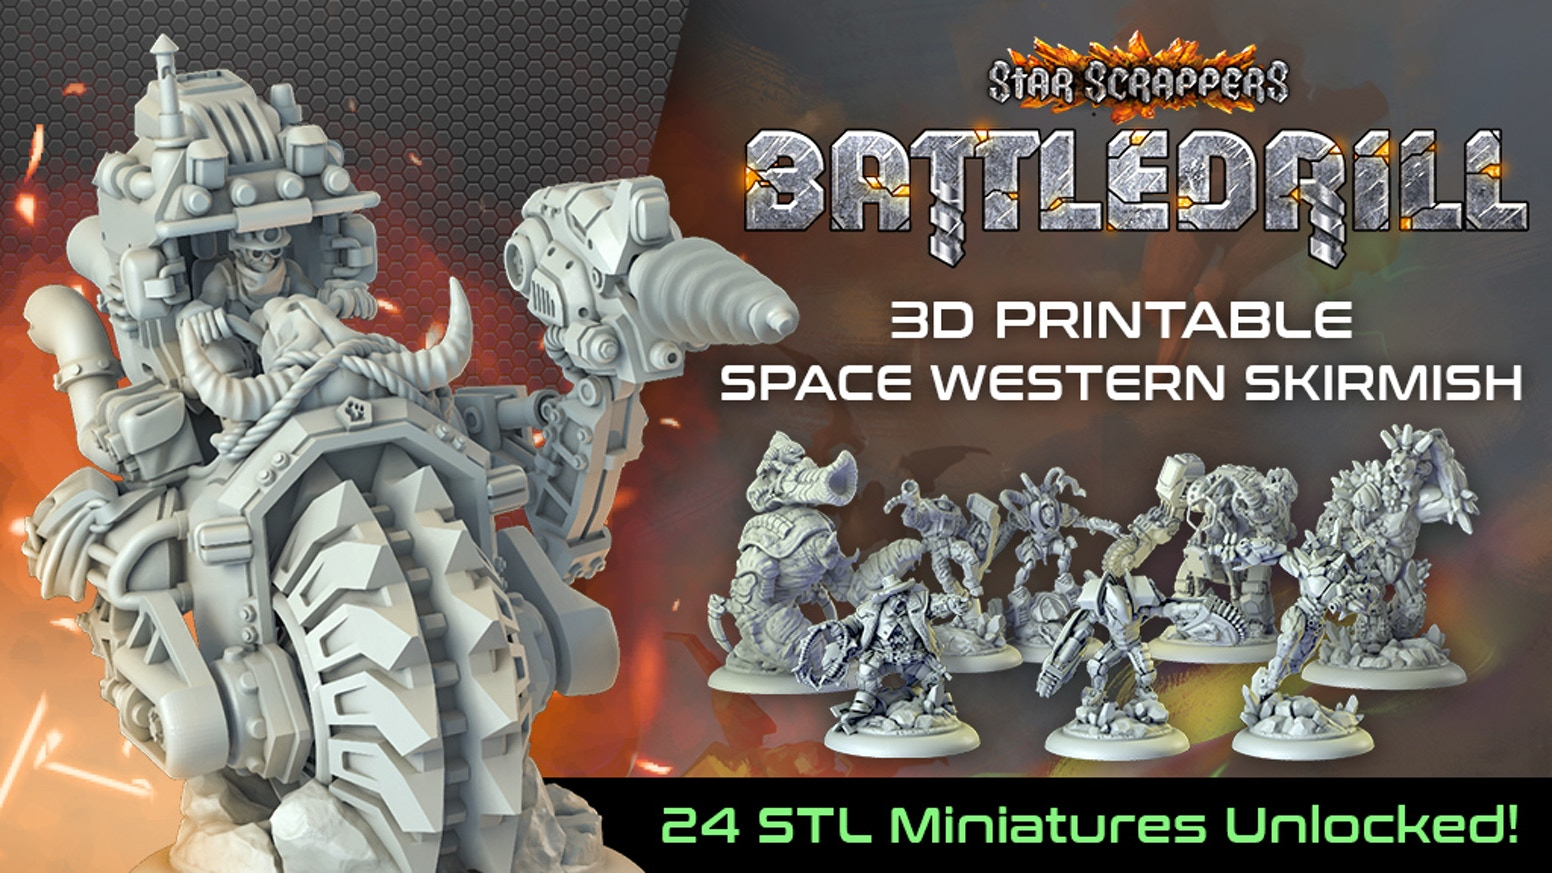 Space western skirmish wargame with lightweight rules and superb miniatures ready to 3d print at home.